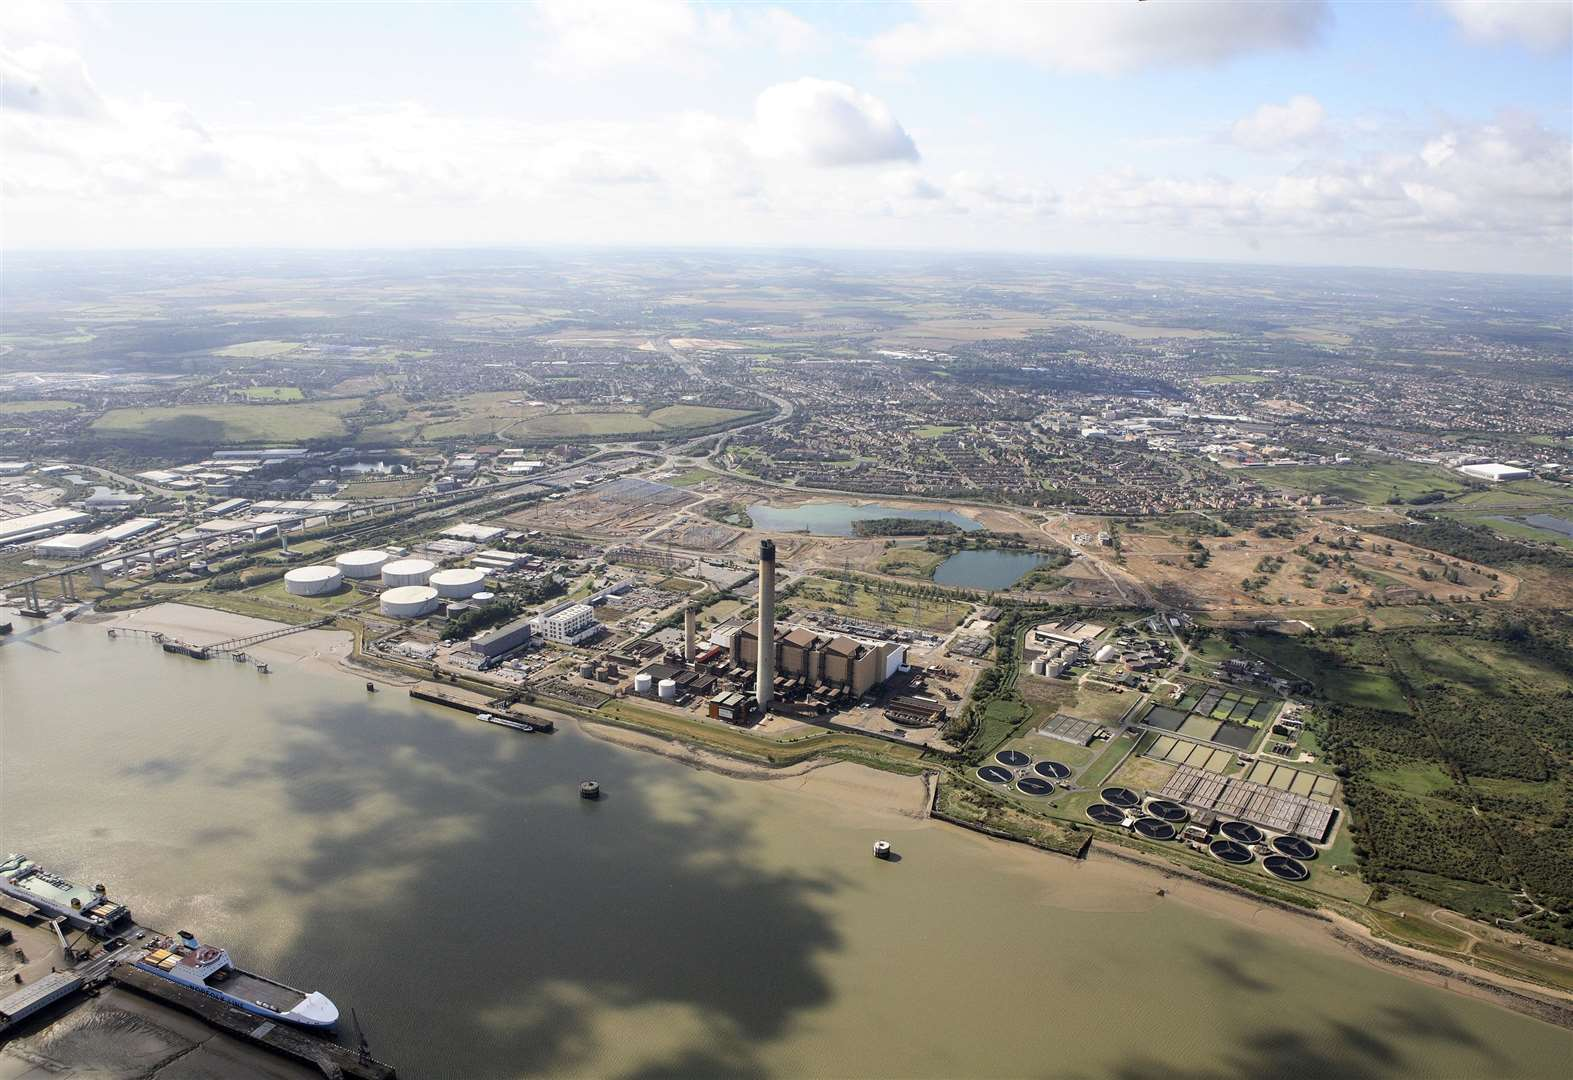 Date set for next stage of power station demolition